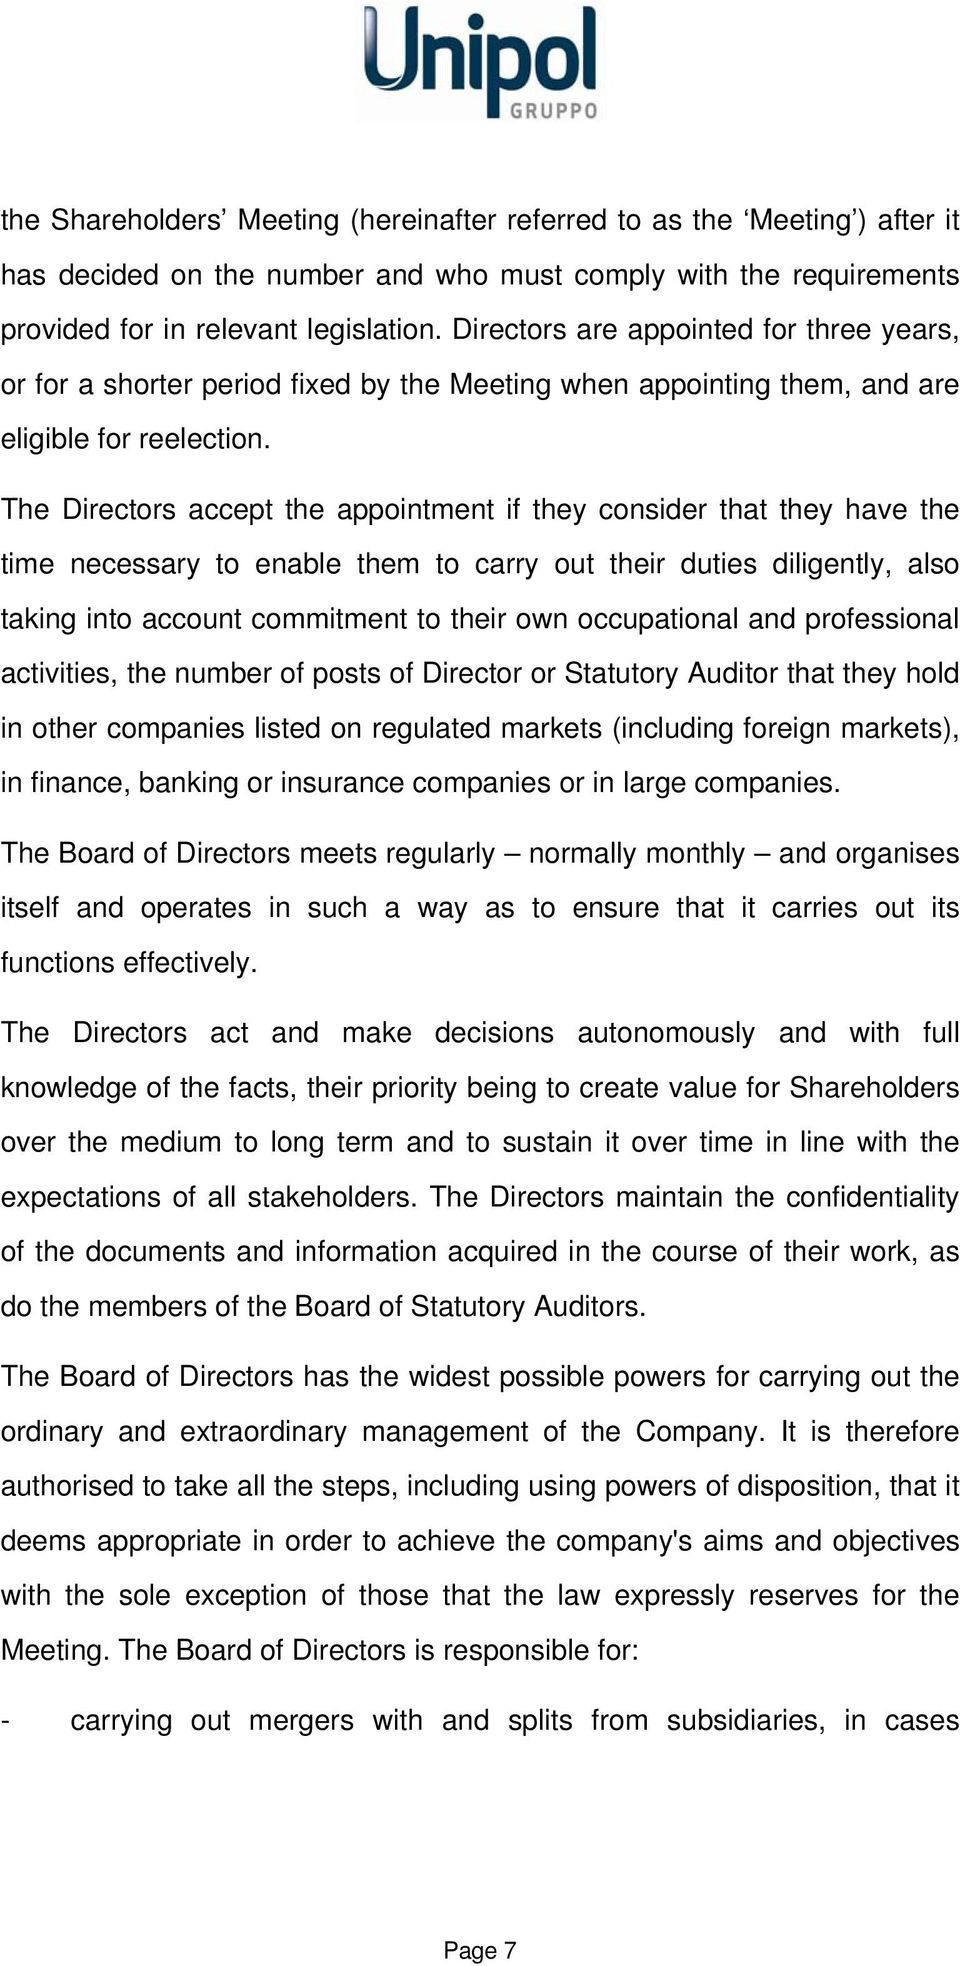 The Directors accept the appointment if they consider that they have the time necessary to enable them to carry out their duties diligently, also taking into account commitment to their own